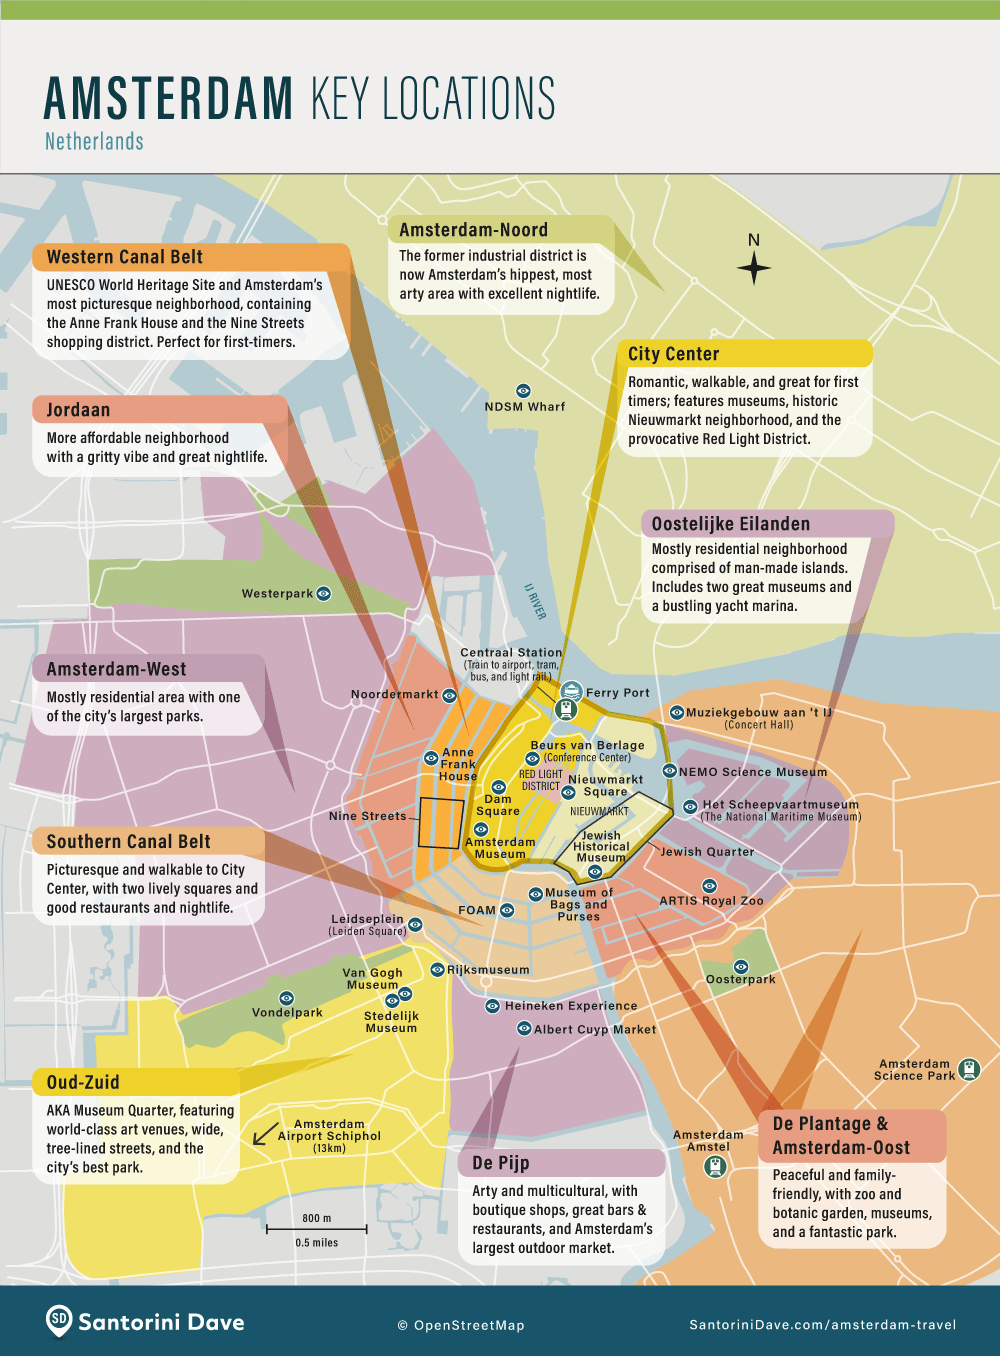 Map showing the best neighborhoods and main attractions in Amsterdam